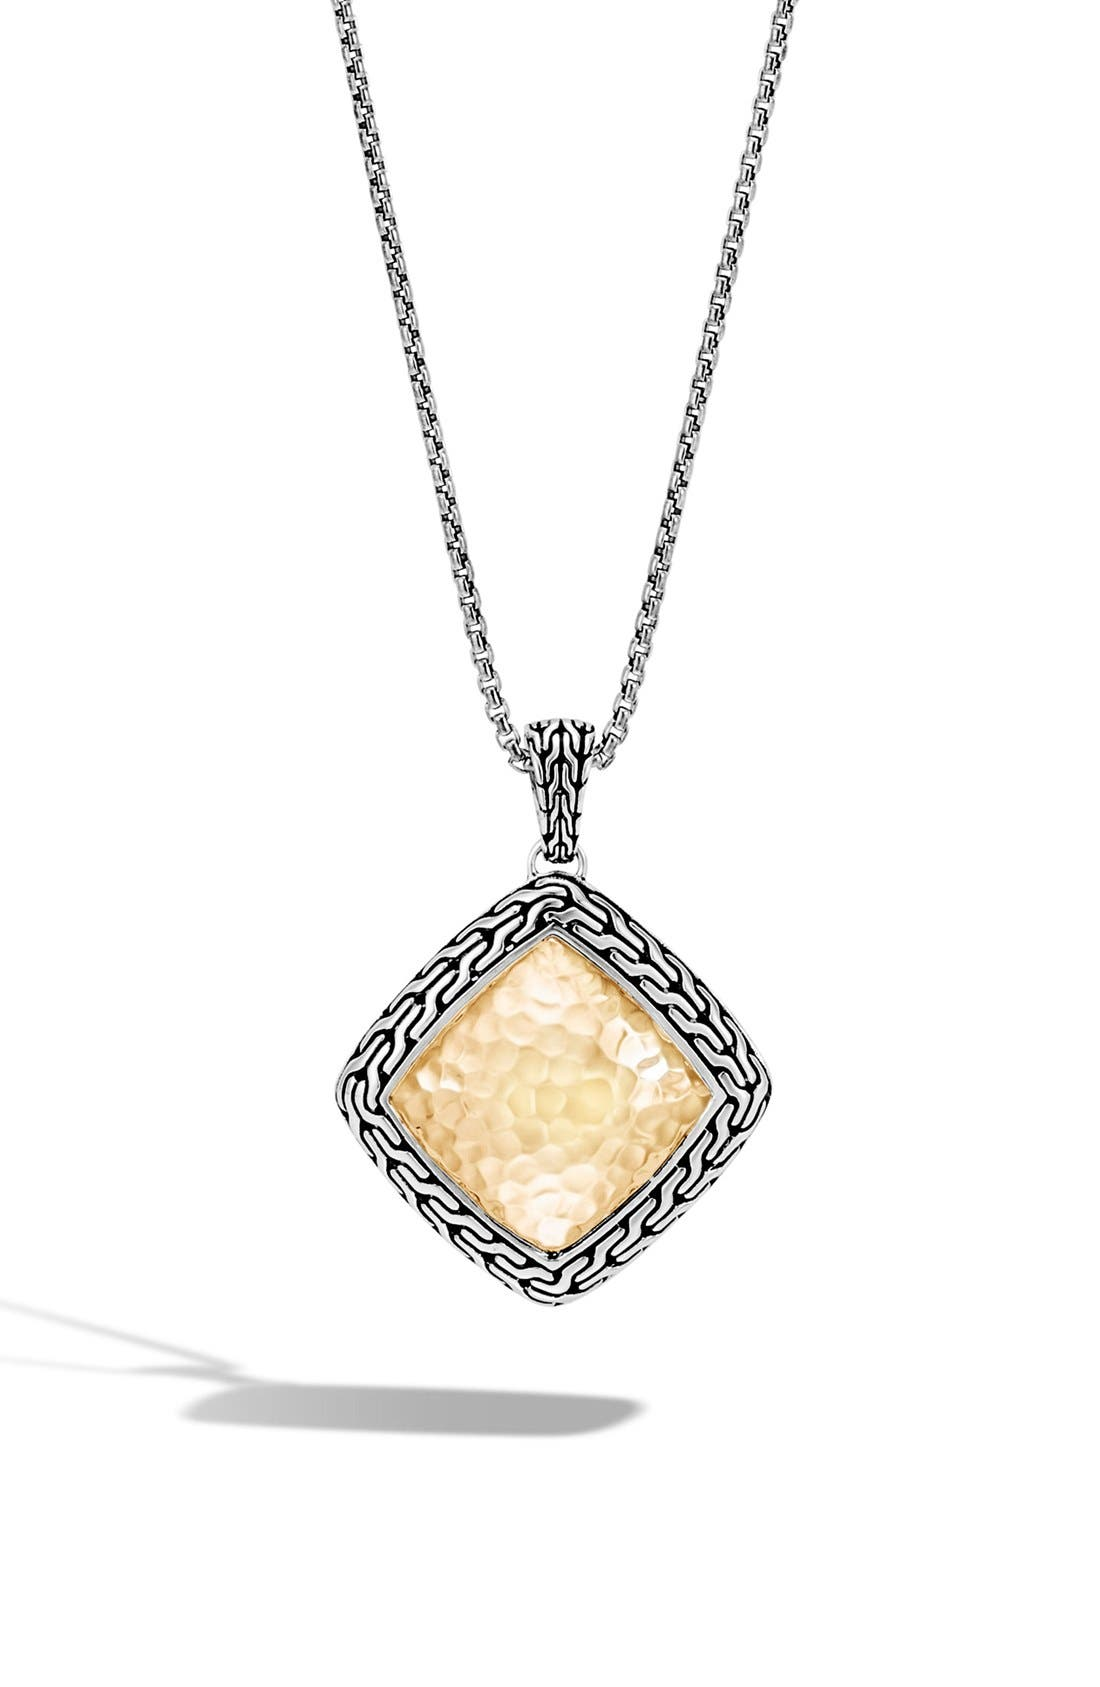 Alternate Image 1 Selected - John Hardy Heritage Quadrangle Pendant Necklcace